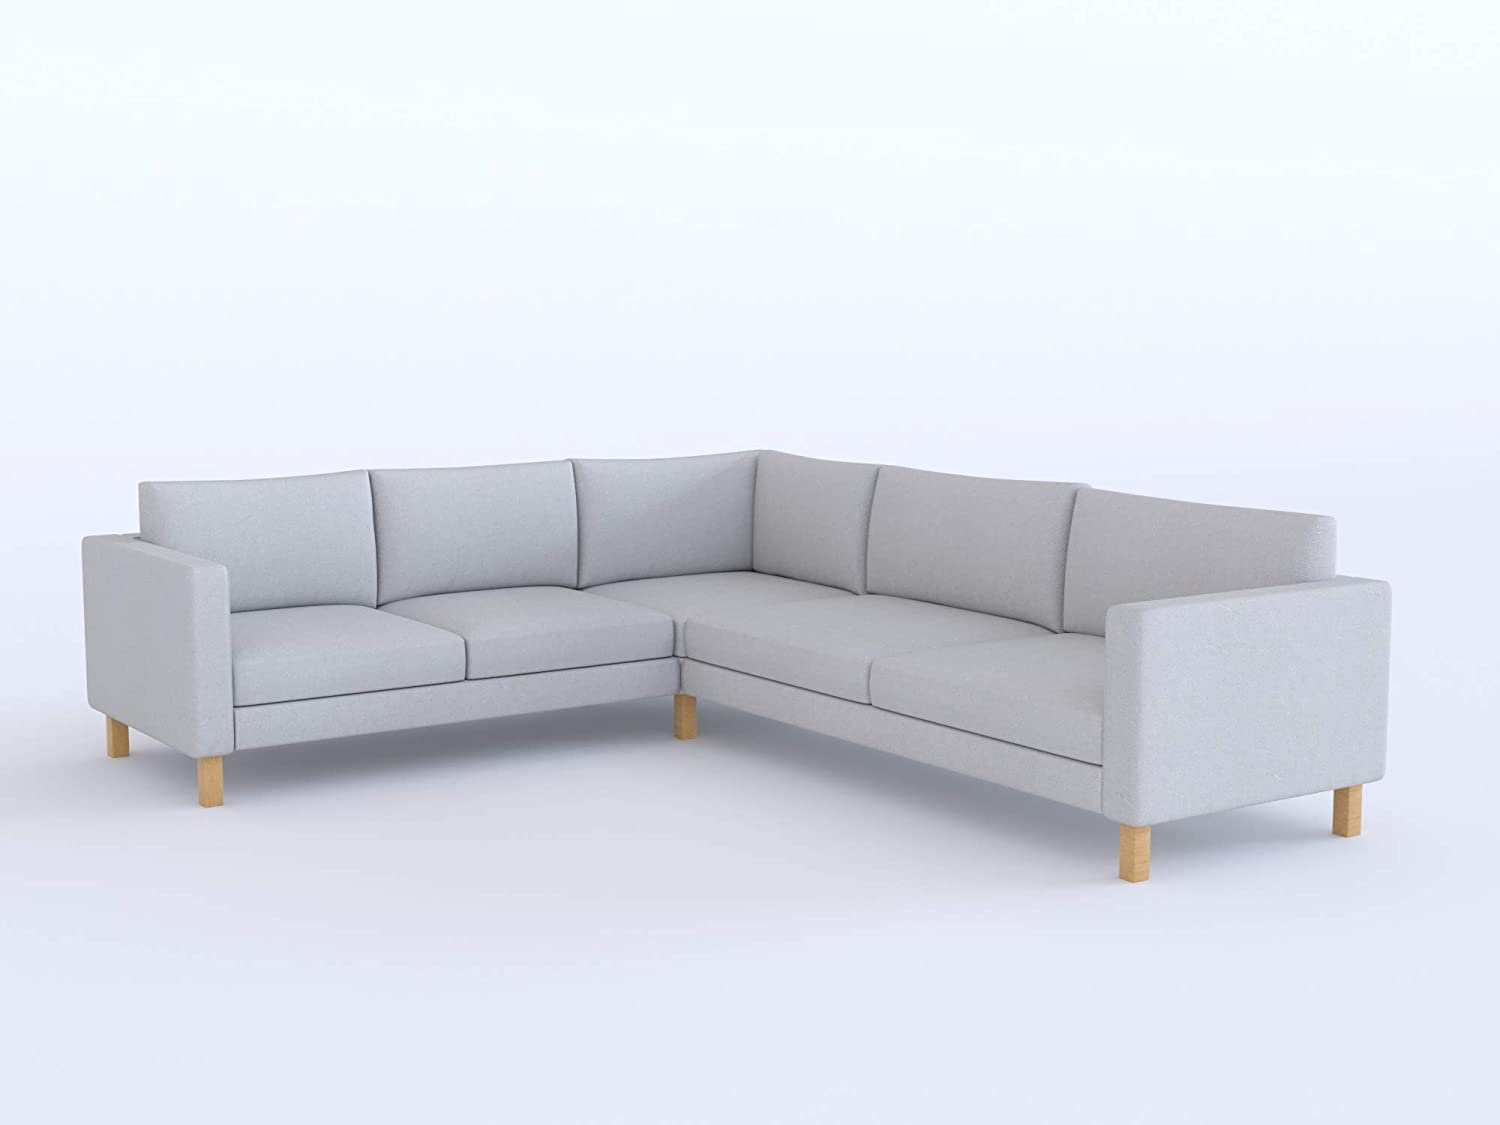 Amazon.com: Replace Cover for IKEA Kalstad 2+3/3+2 Sectional ...